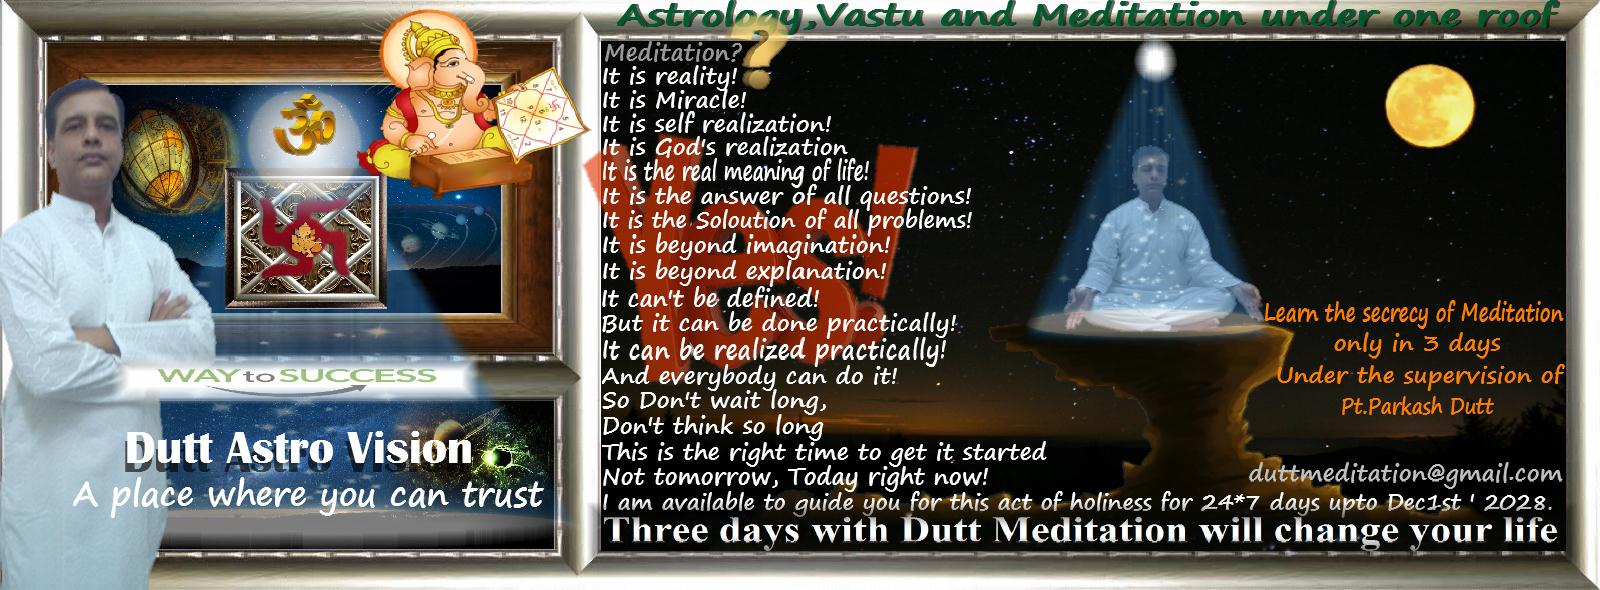 Three days with Dutt Meditation will change your life